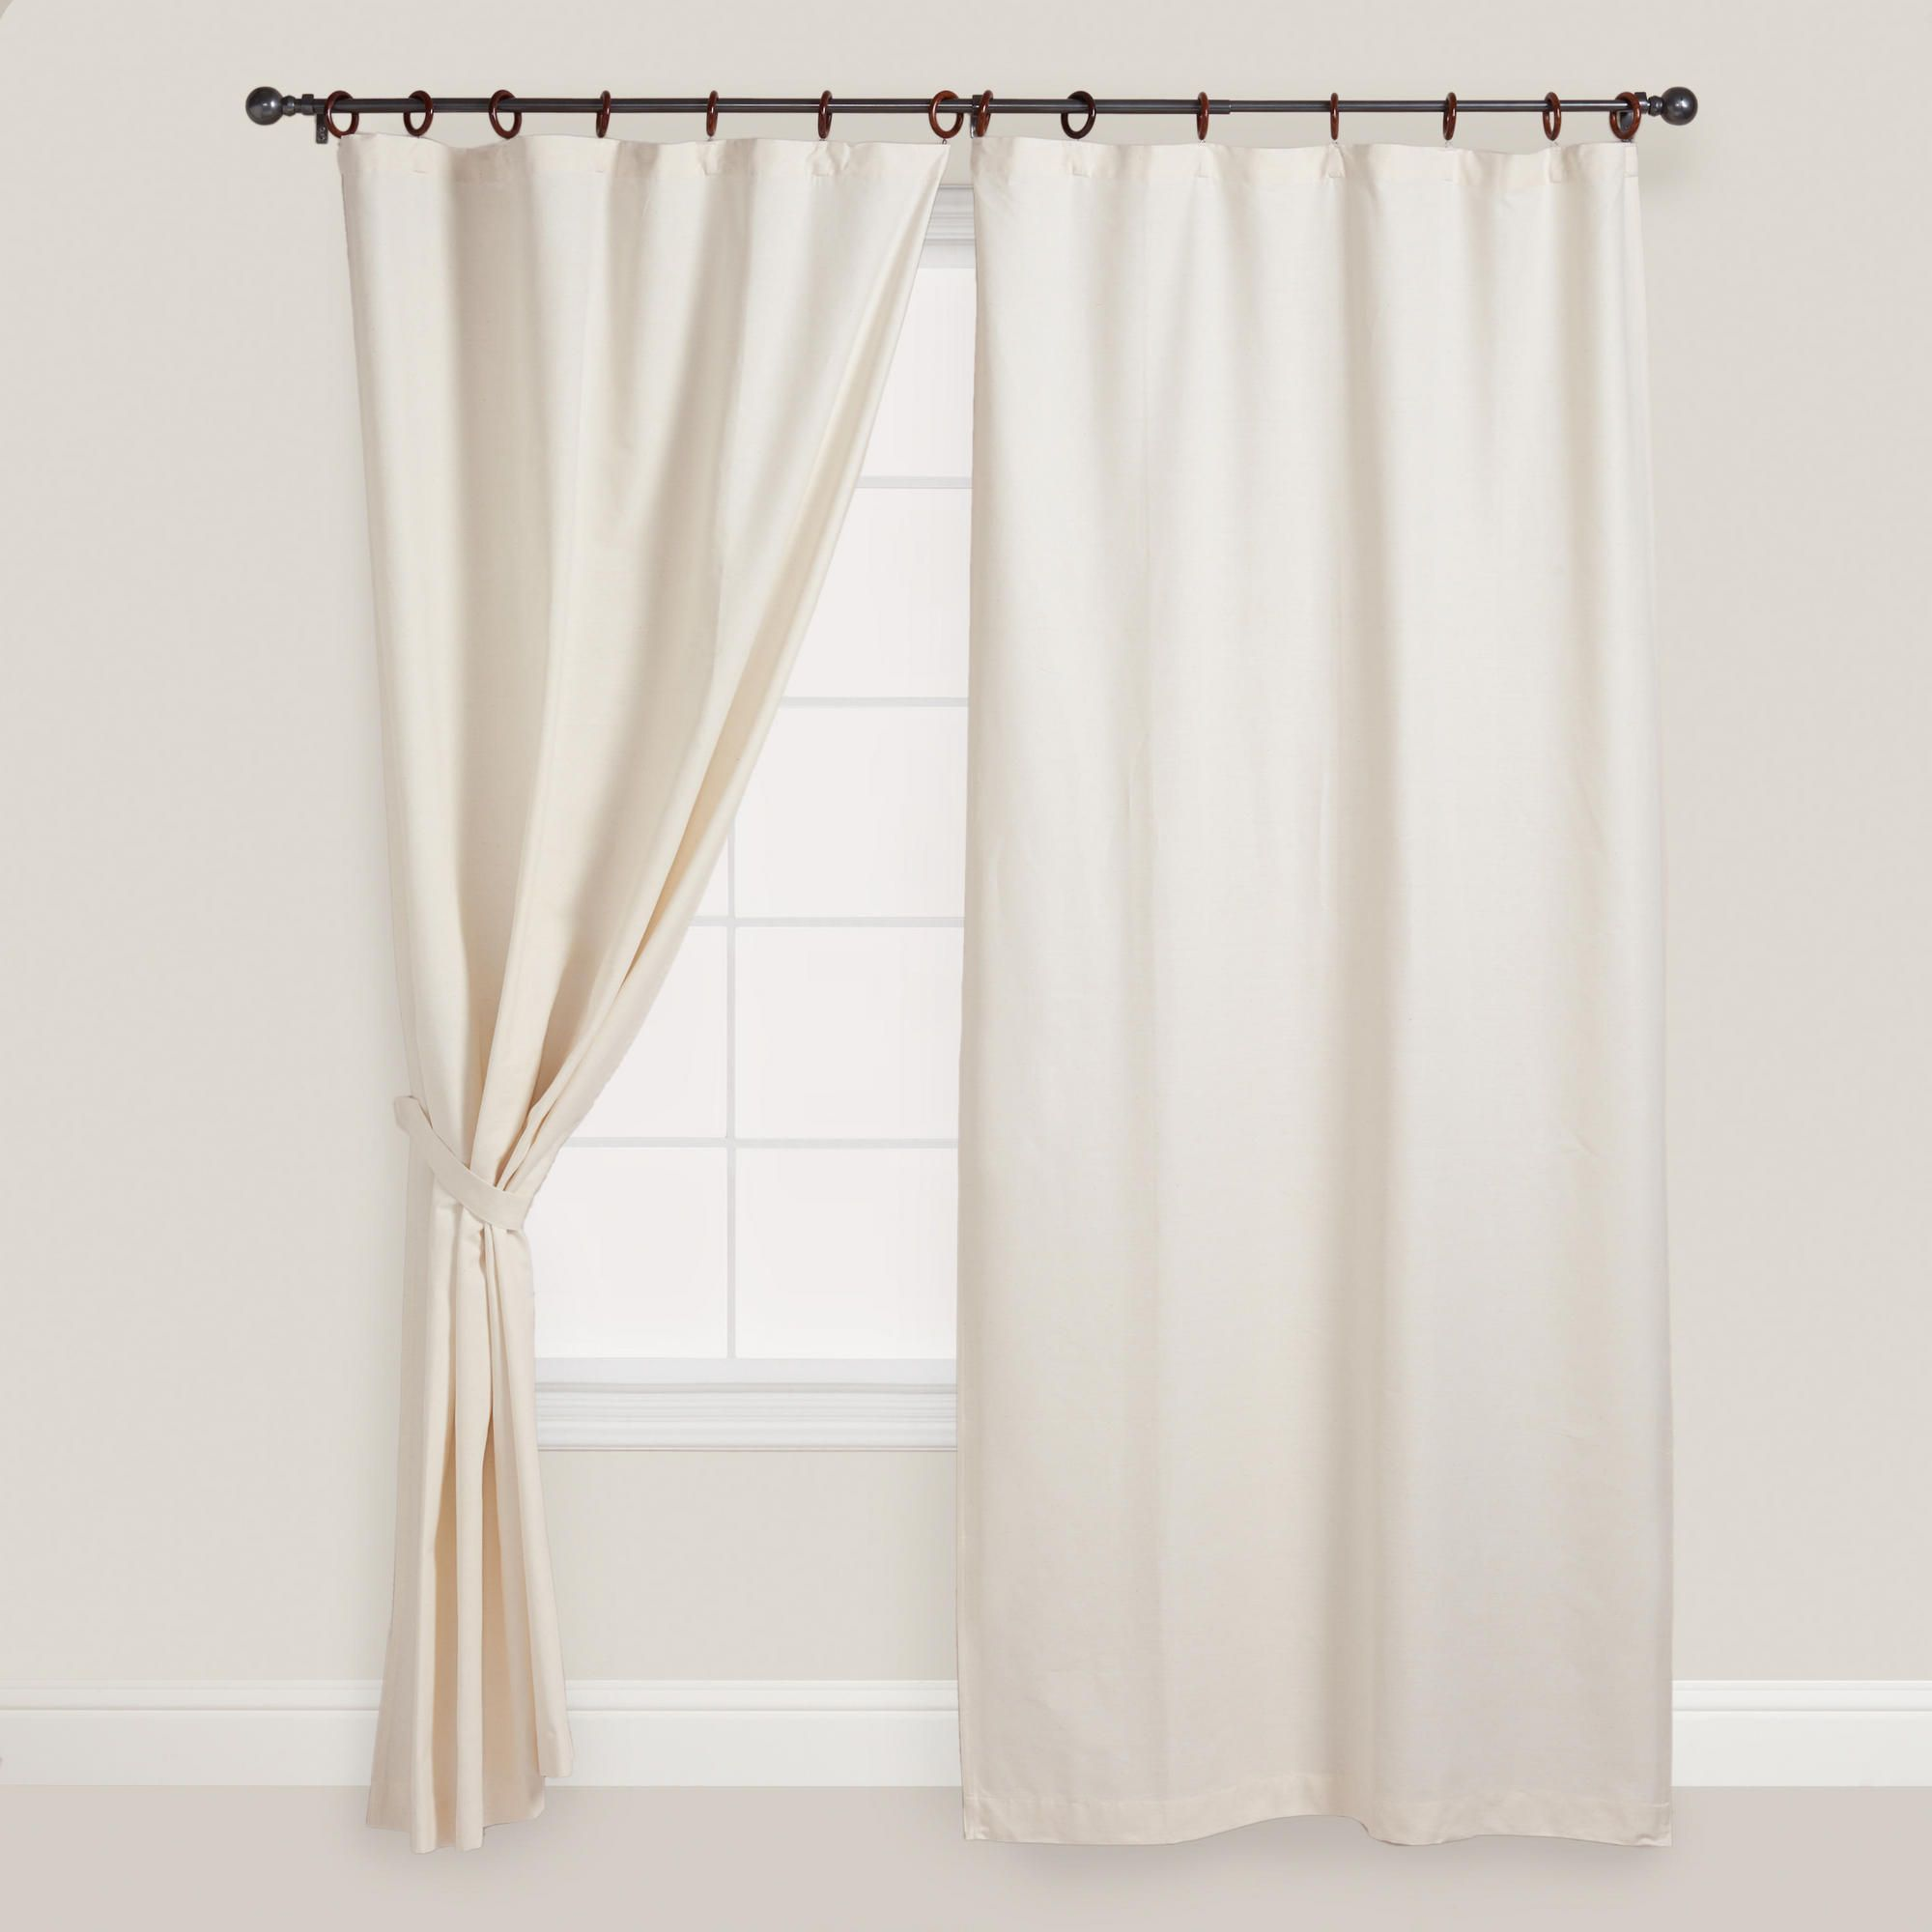 Natural Jaya Canvas Curtain World Market Home Pinterest -> Argollas Para Cortinas Sala